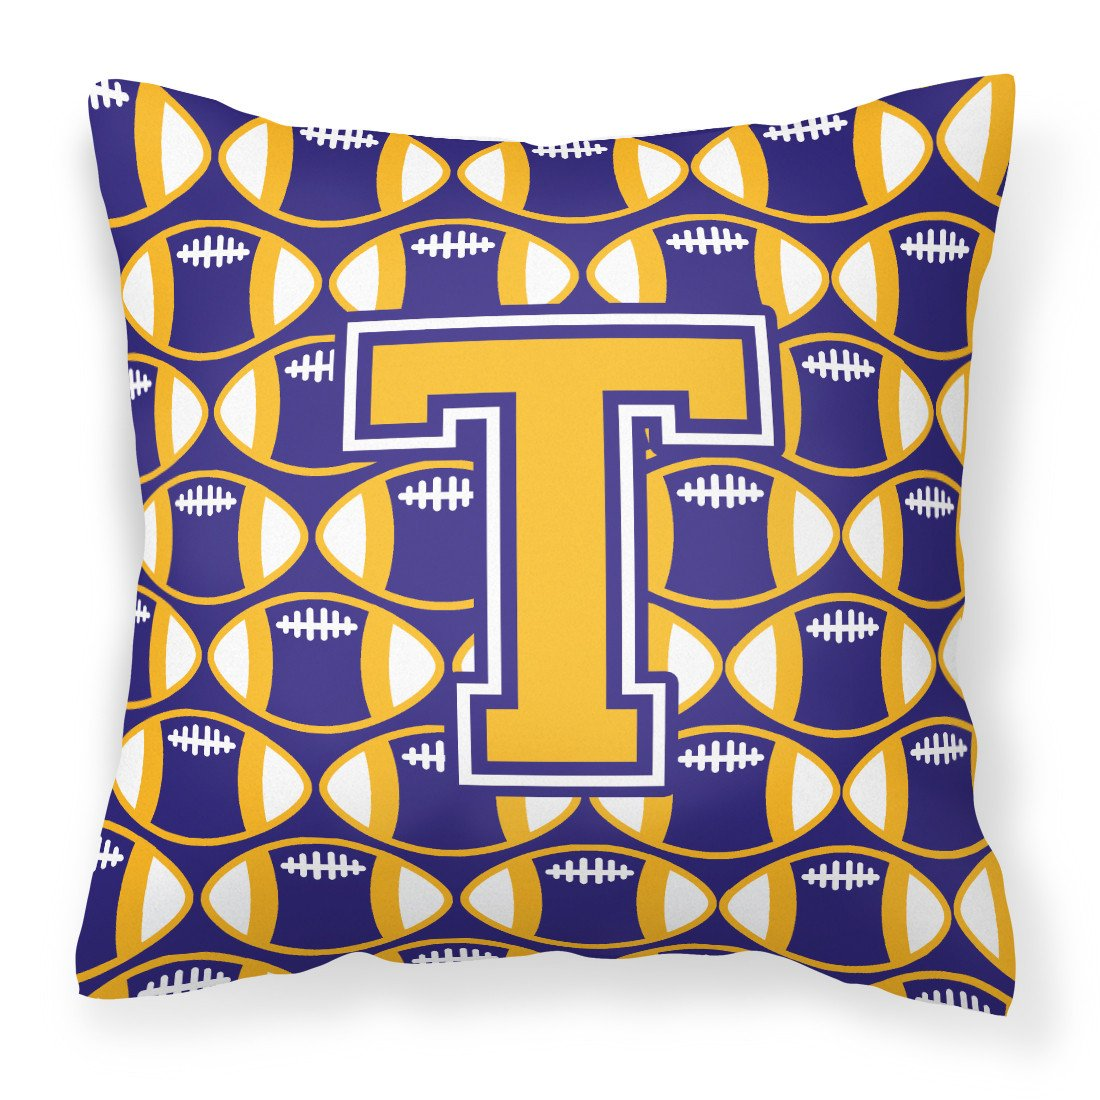 Buy this Letter T Football Purple and Gold Fabric Decorative Pillow CJ1064-TPW1414